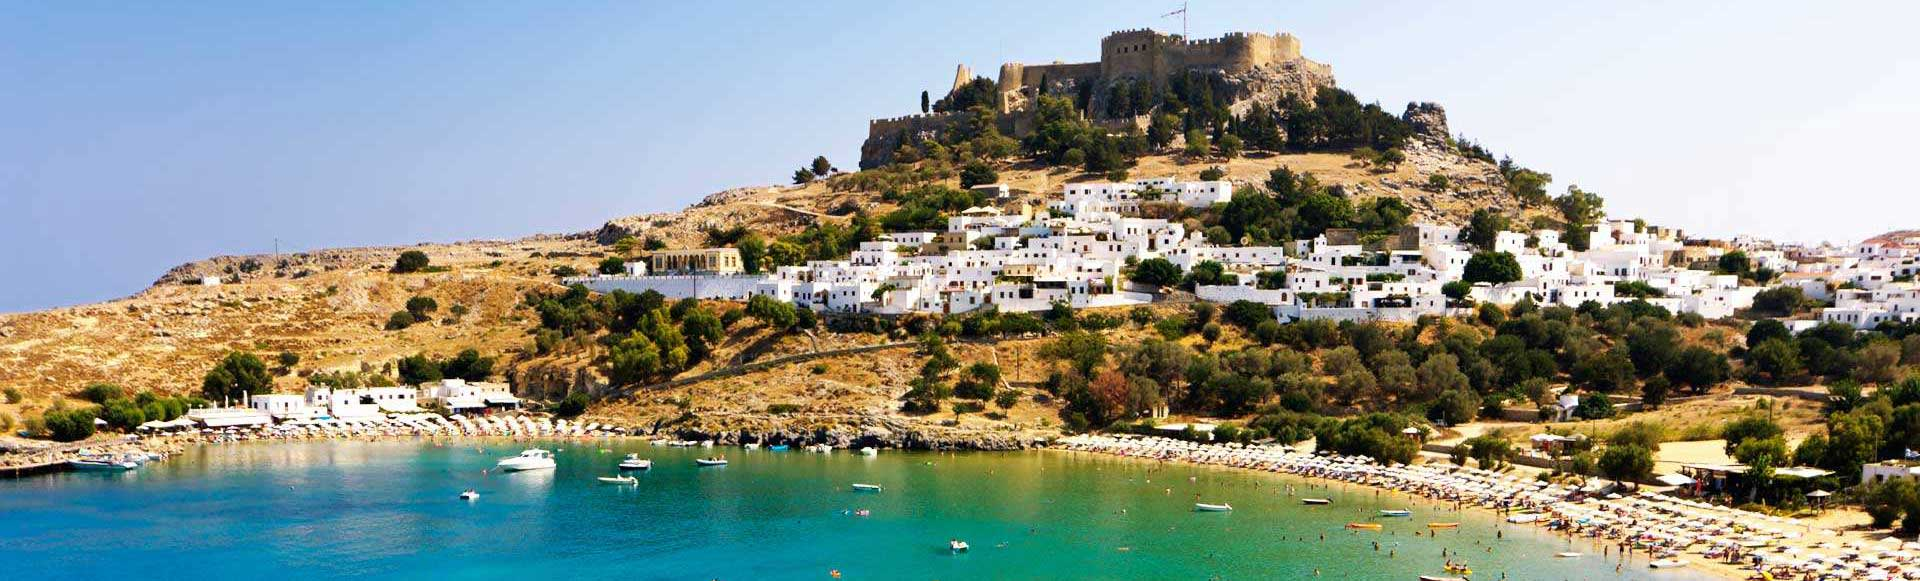 Yacht rental Dodecanese Islands, Greece